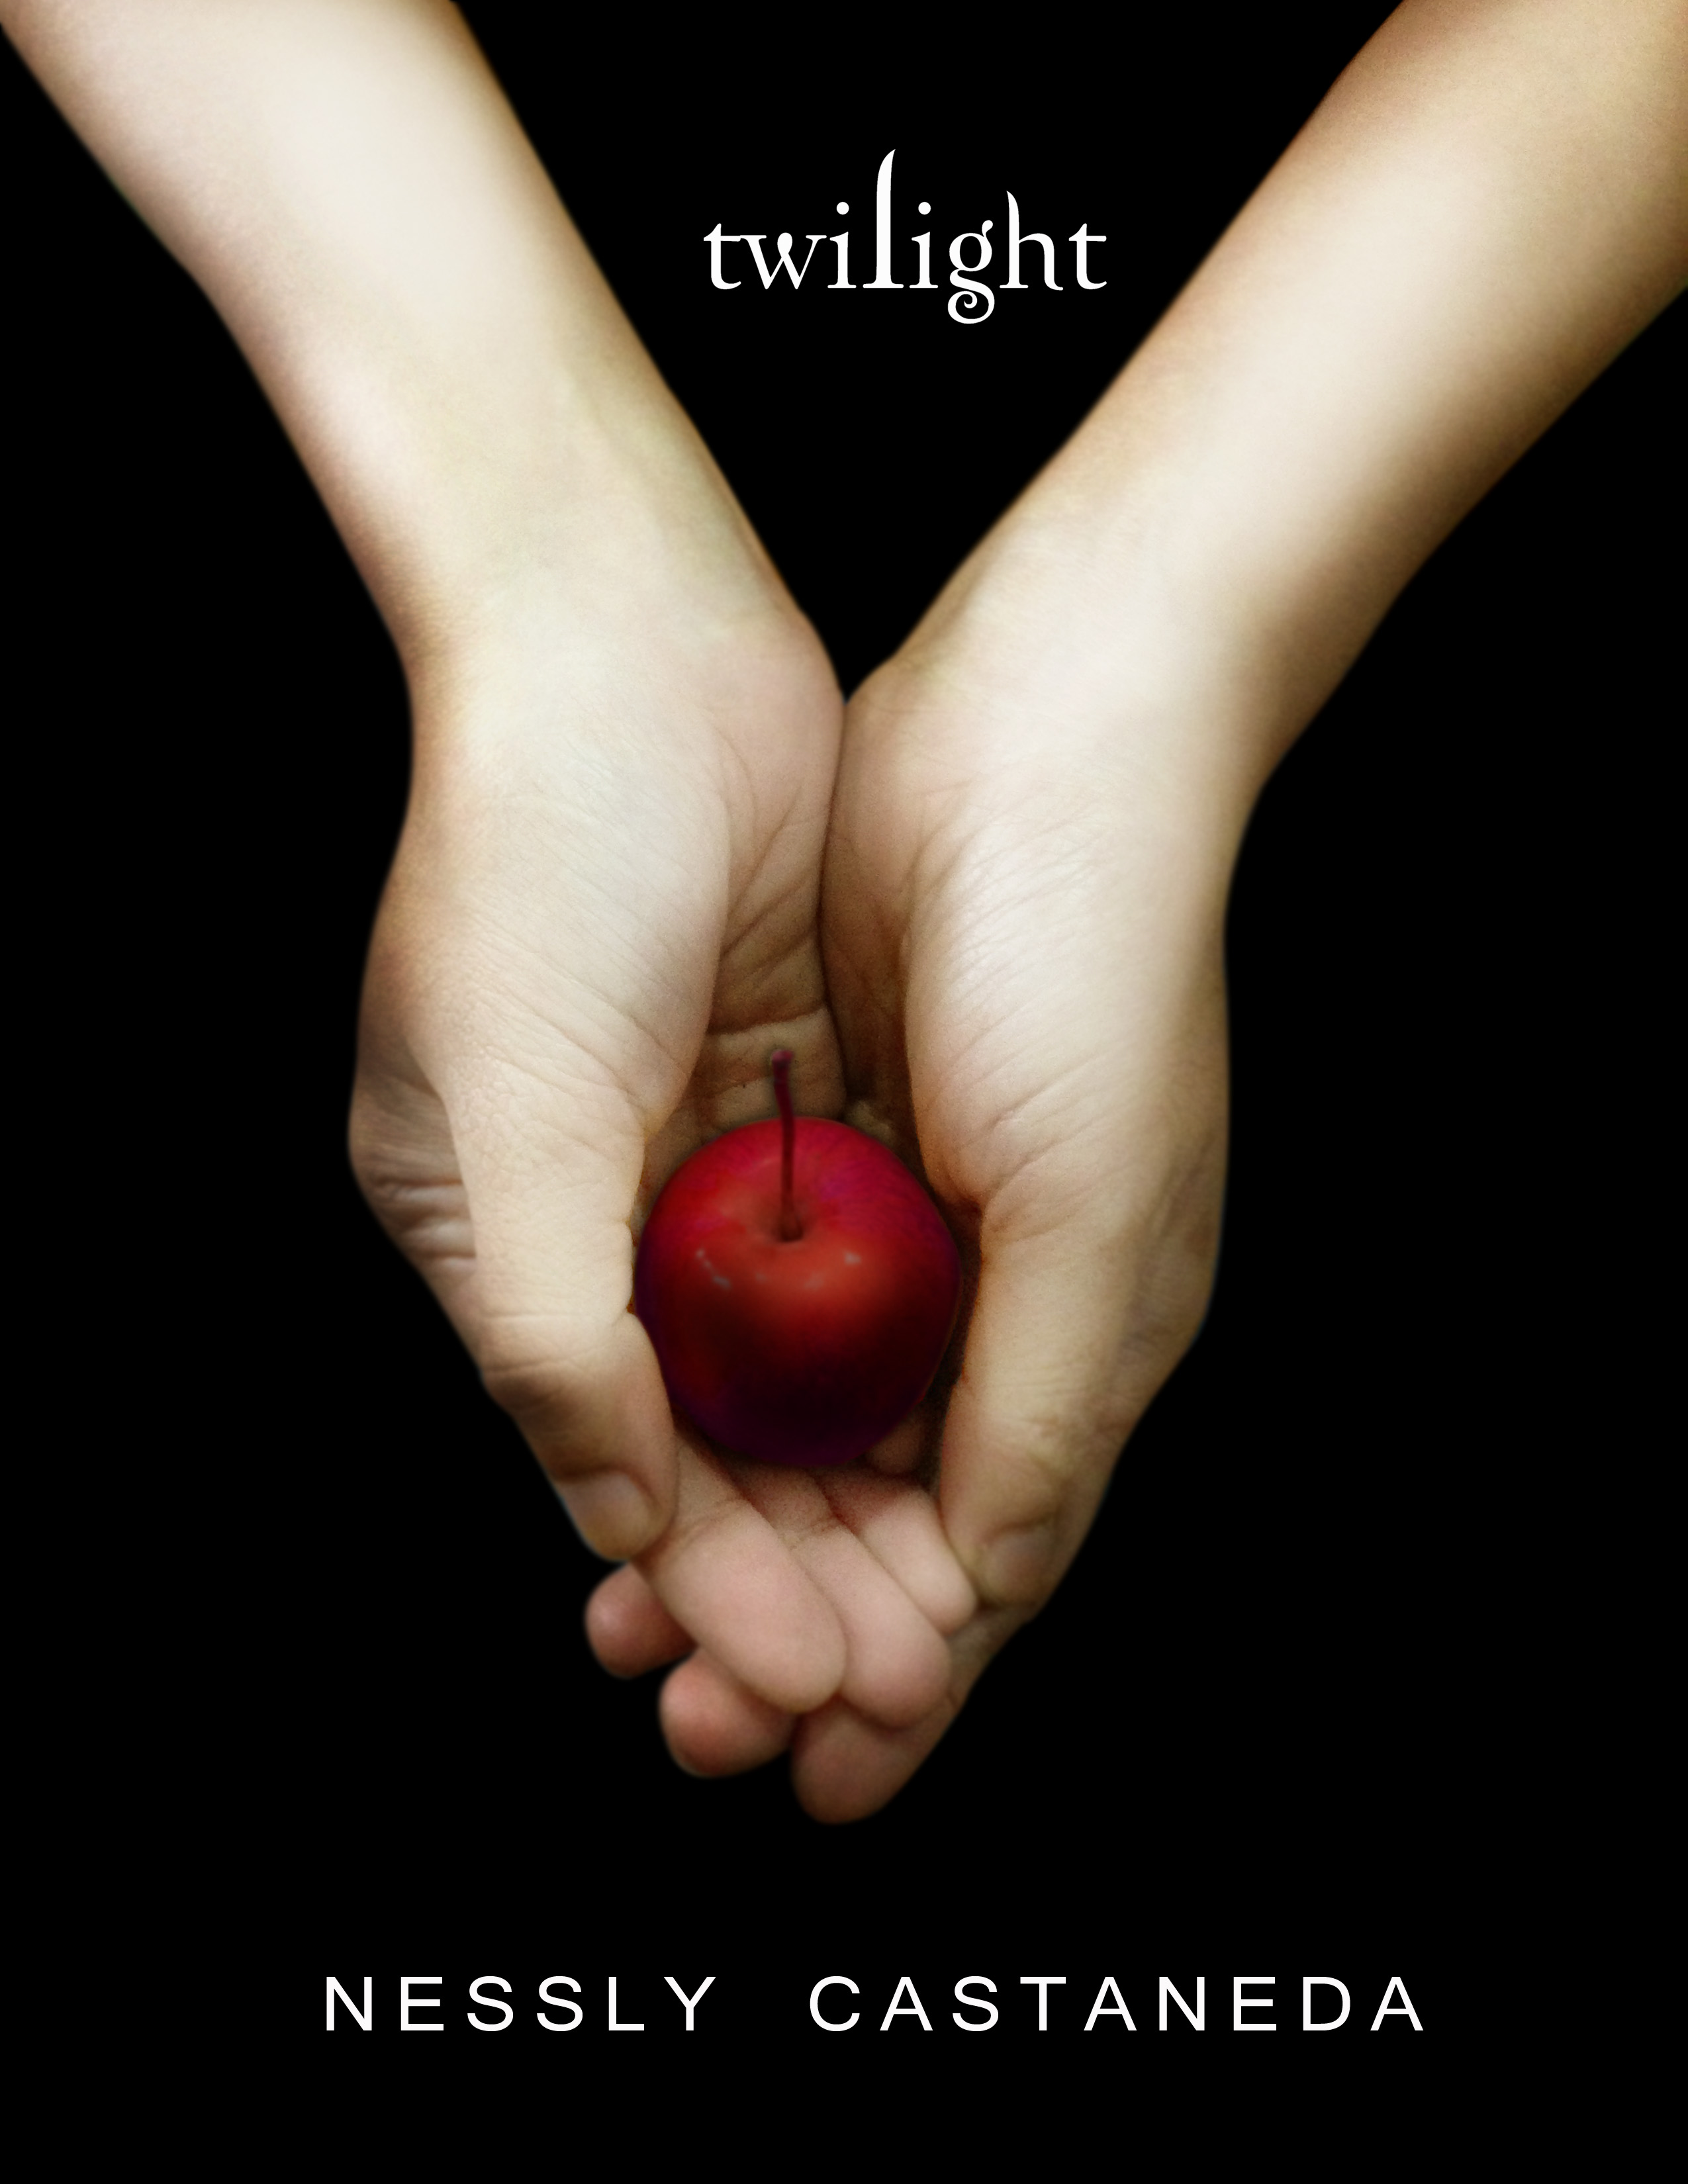 Twilight Book Cover Pictures : Twilight